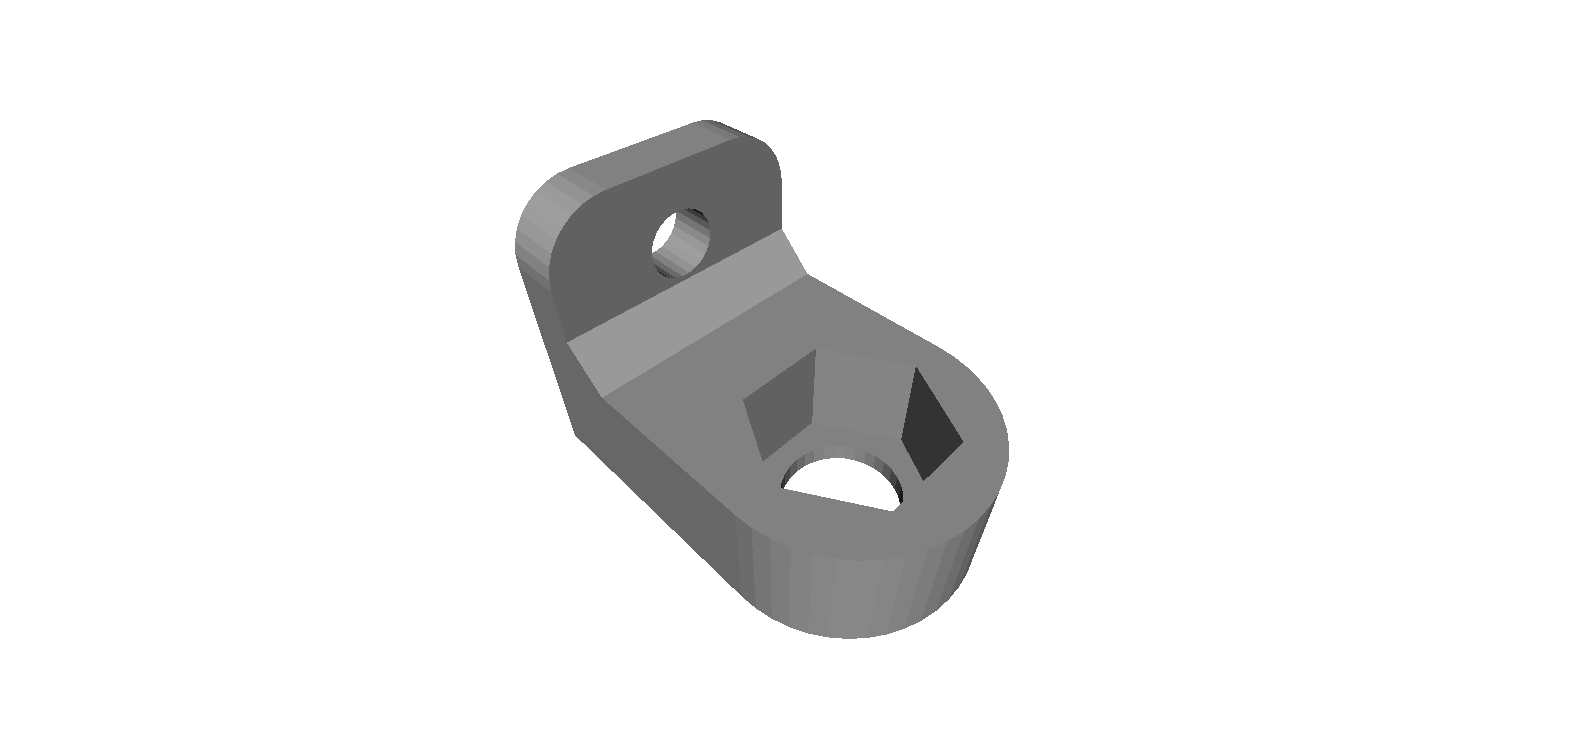 linear model/freecad/STLs/end nut holder large.png